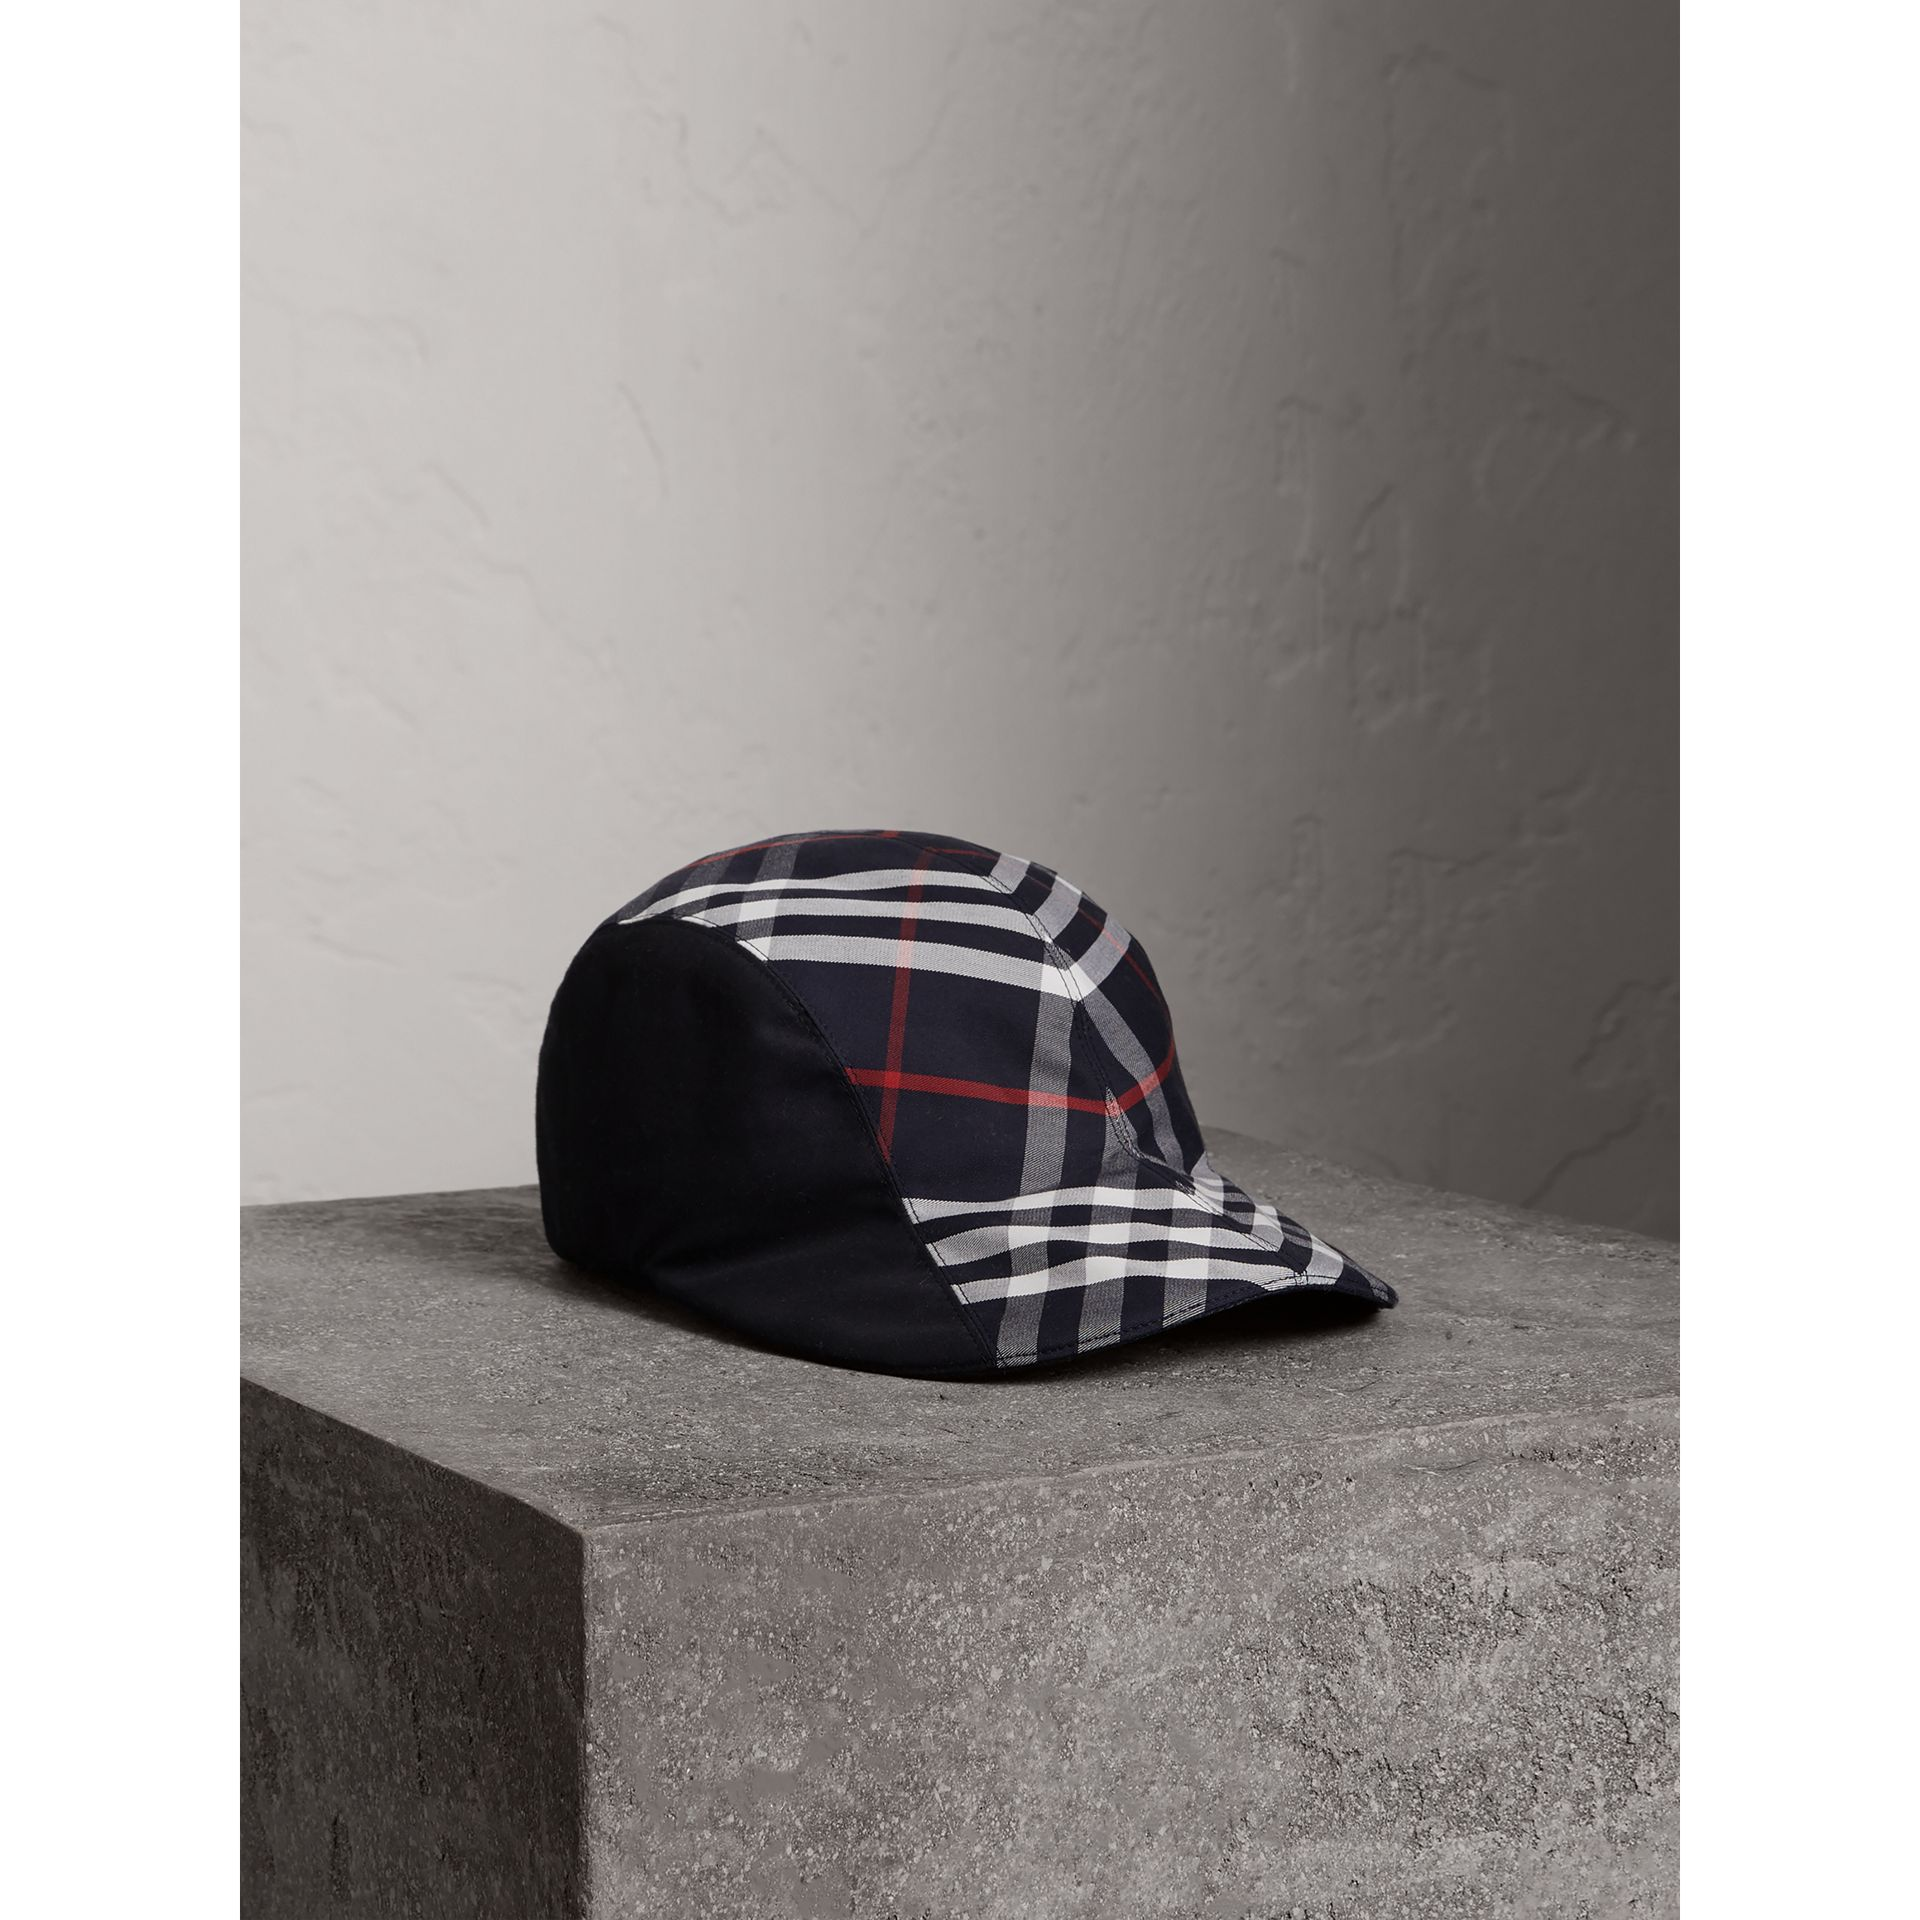 Gosha x Burberry Duckbill Cap in Navy | Burberry - gallery image 1